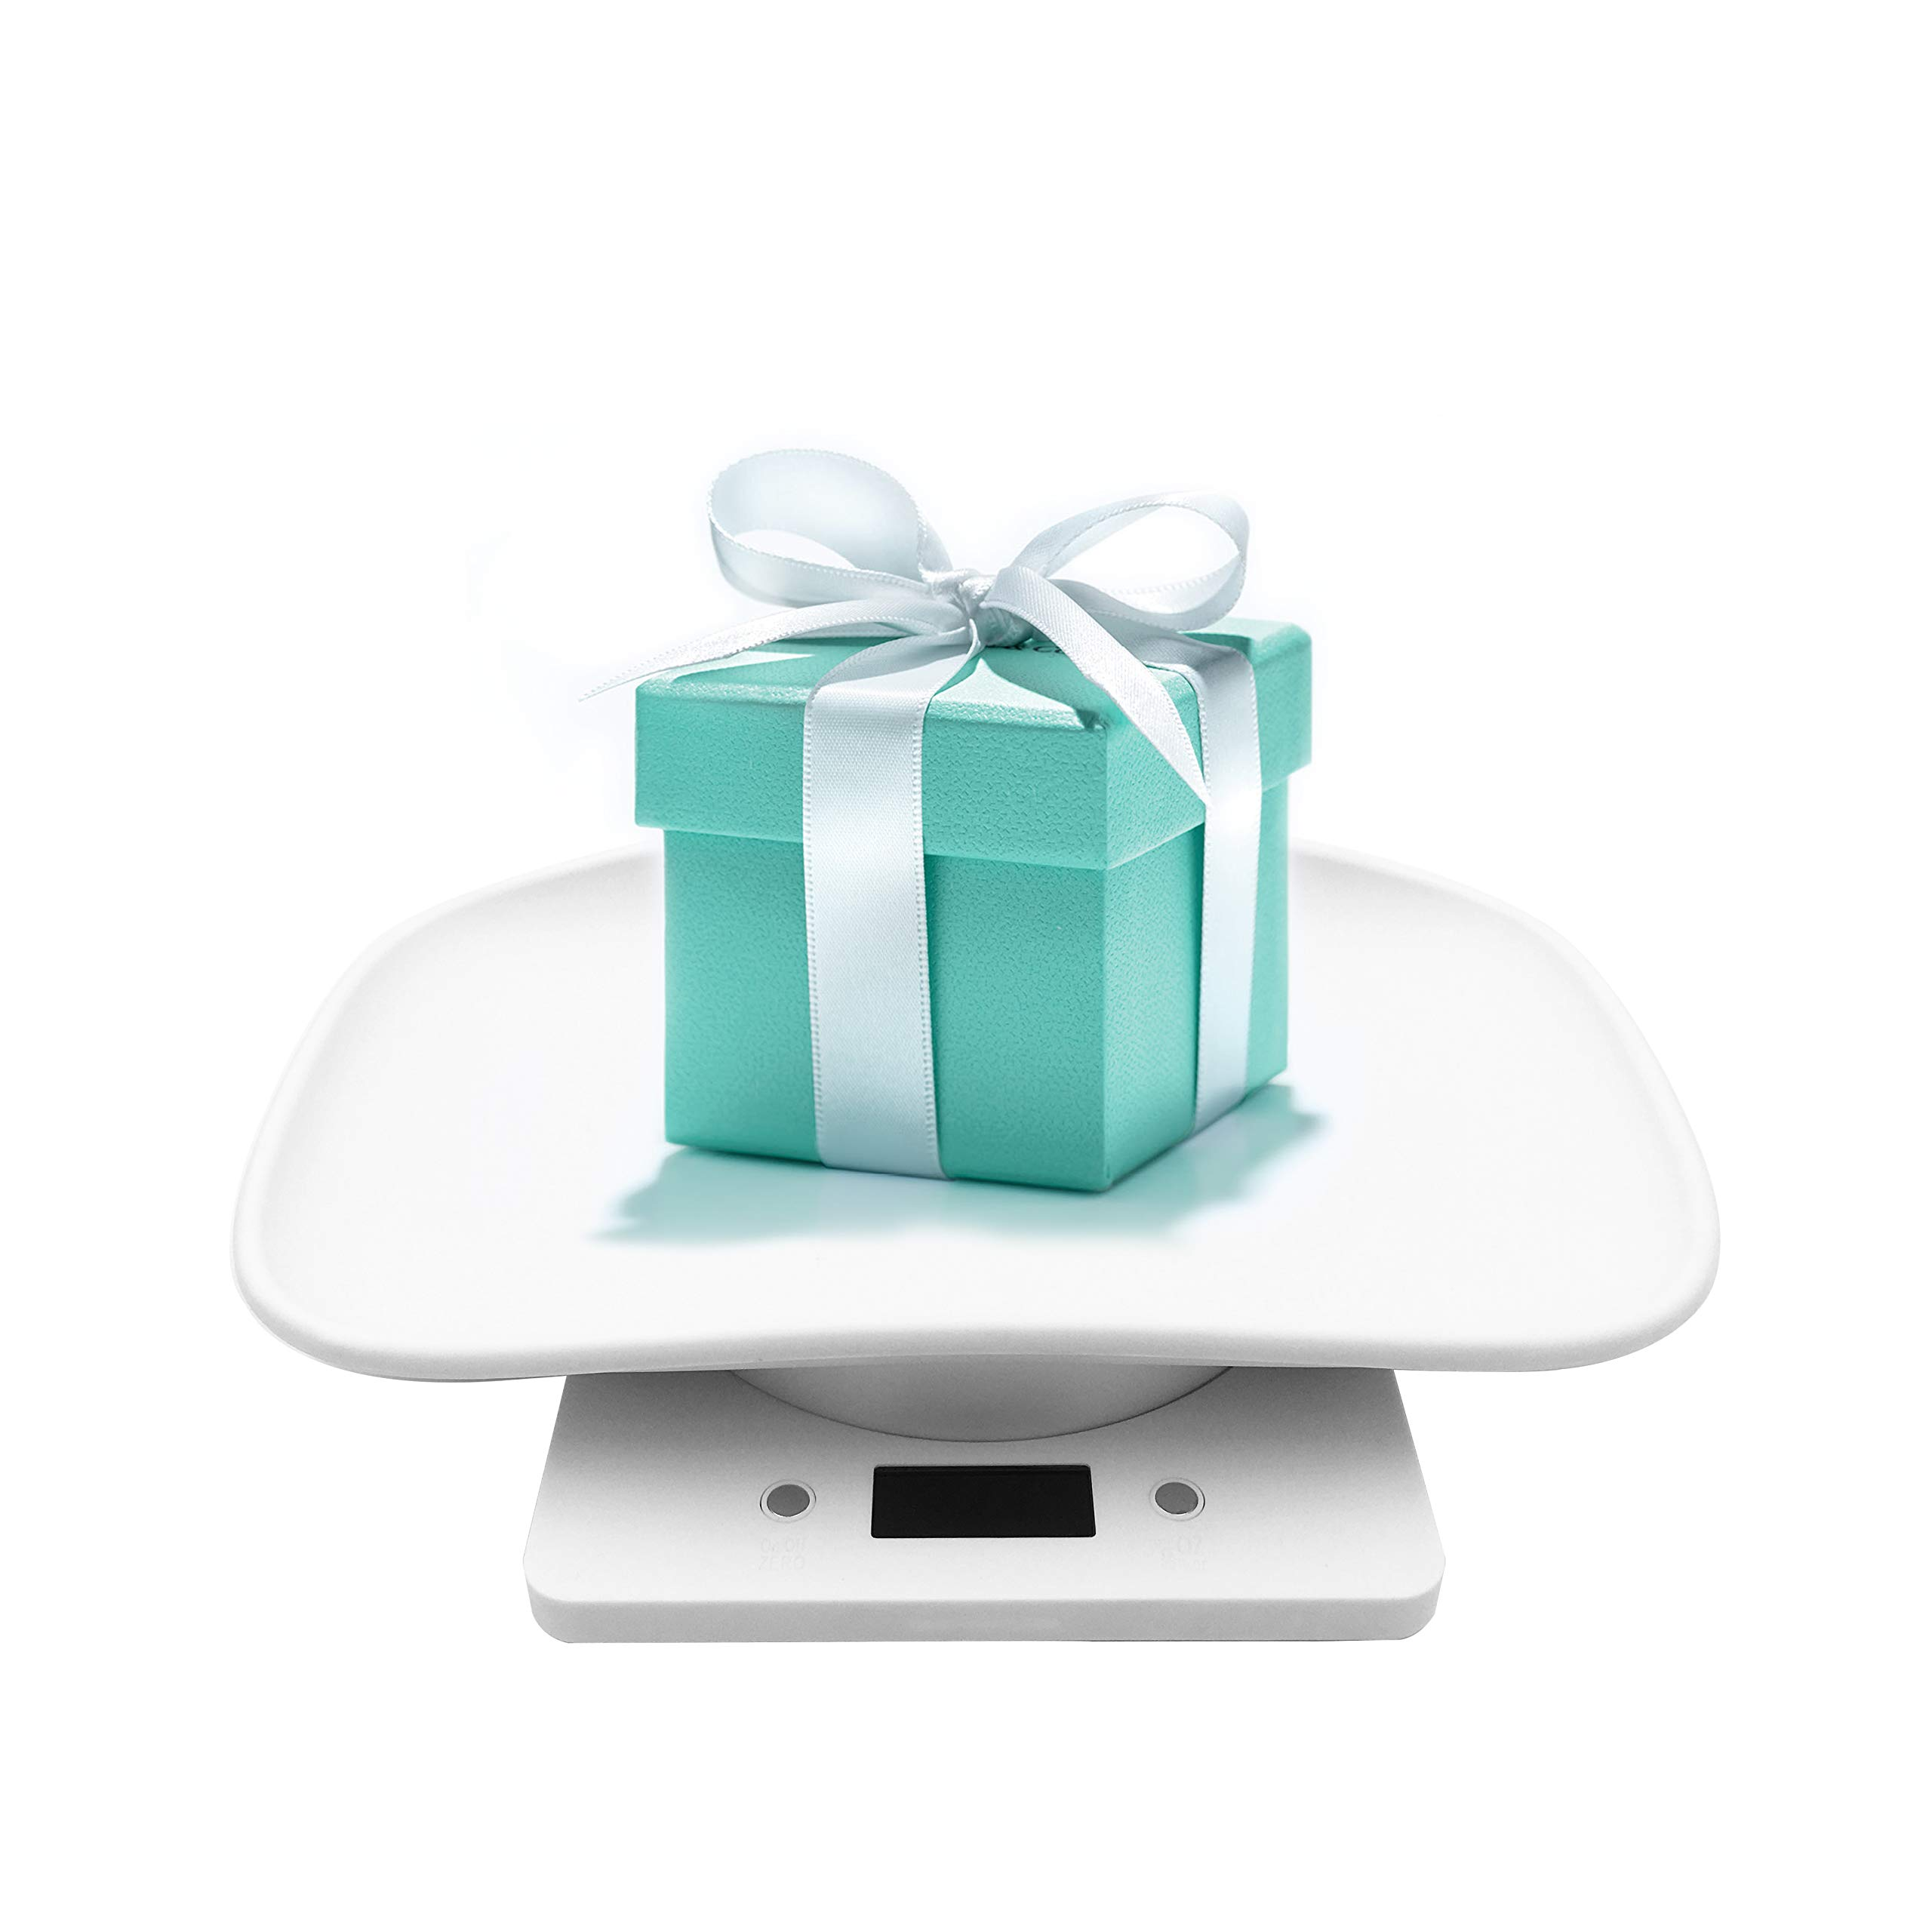 New Model Electronic Kitchen Post or Small pet Scale (No Moving) MAX 10KG (22 LB) Both for Solid and Liquid